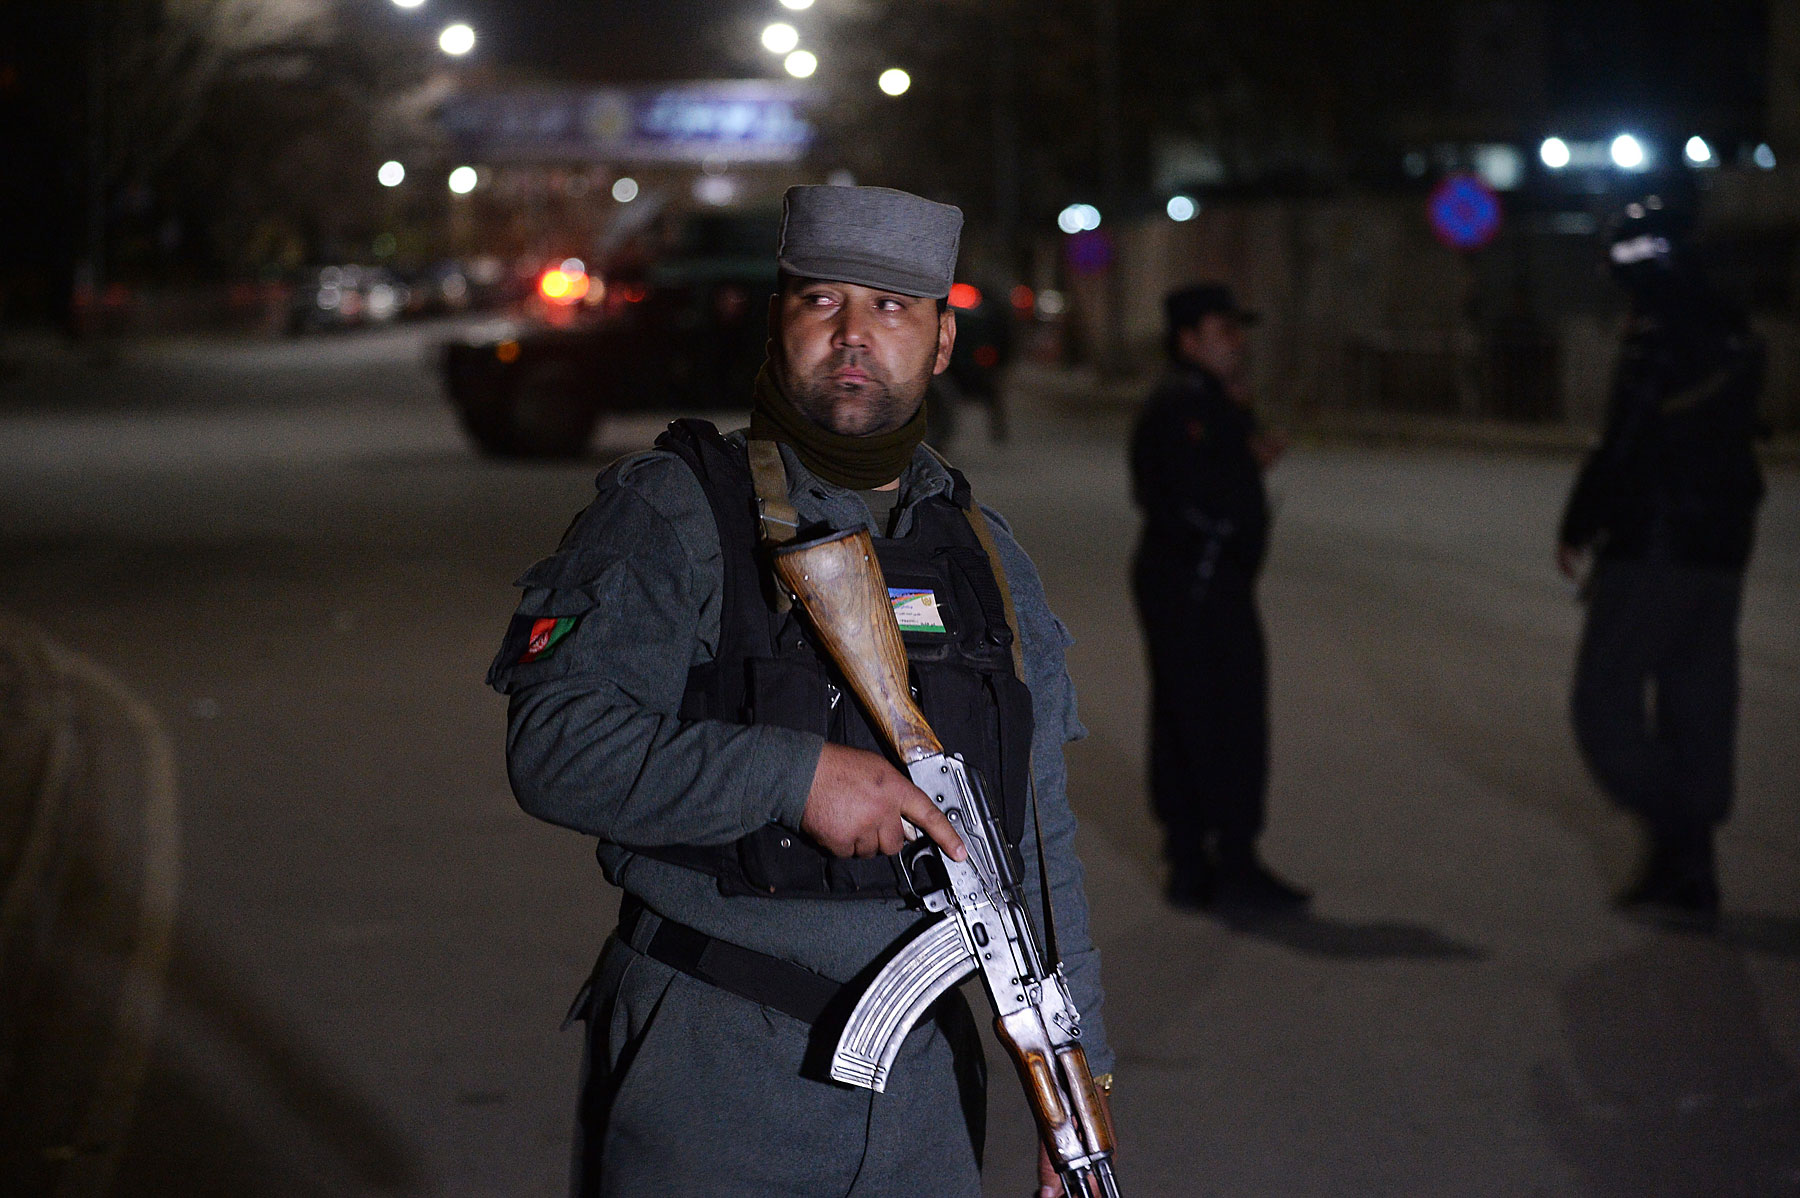 An Afghan policeman stands guard near the security perimeter setup around the Serena hotel in Kabul late on March 21, 2014.